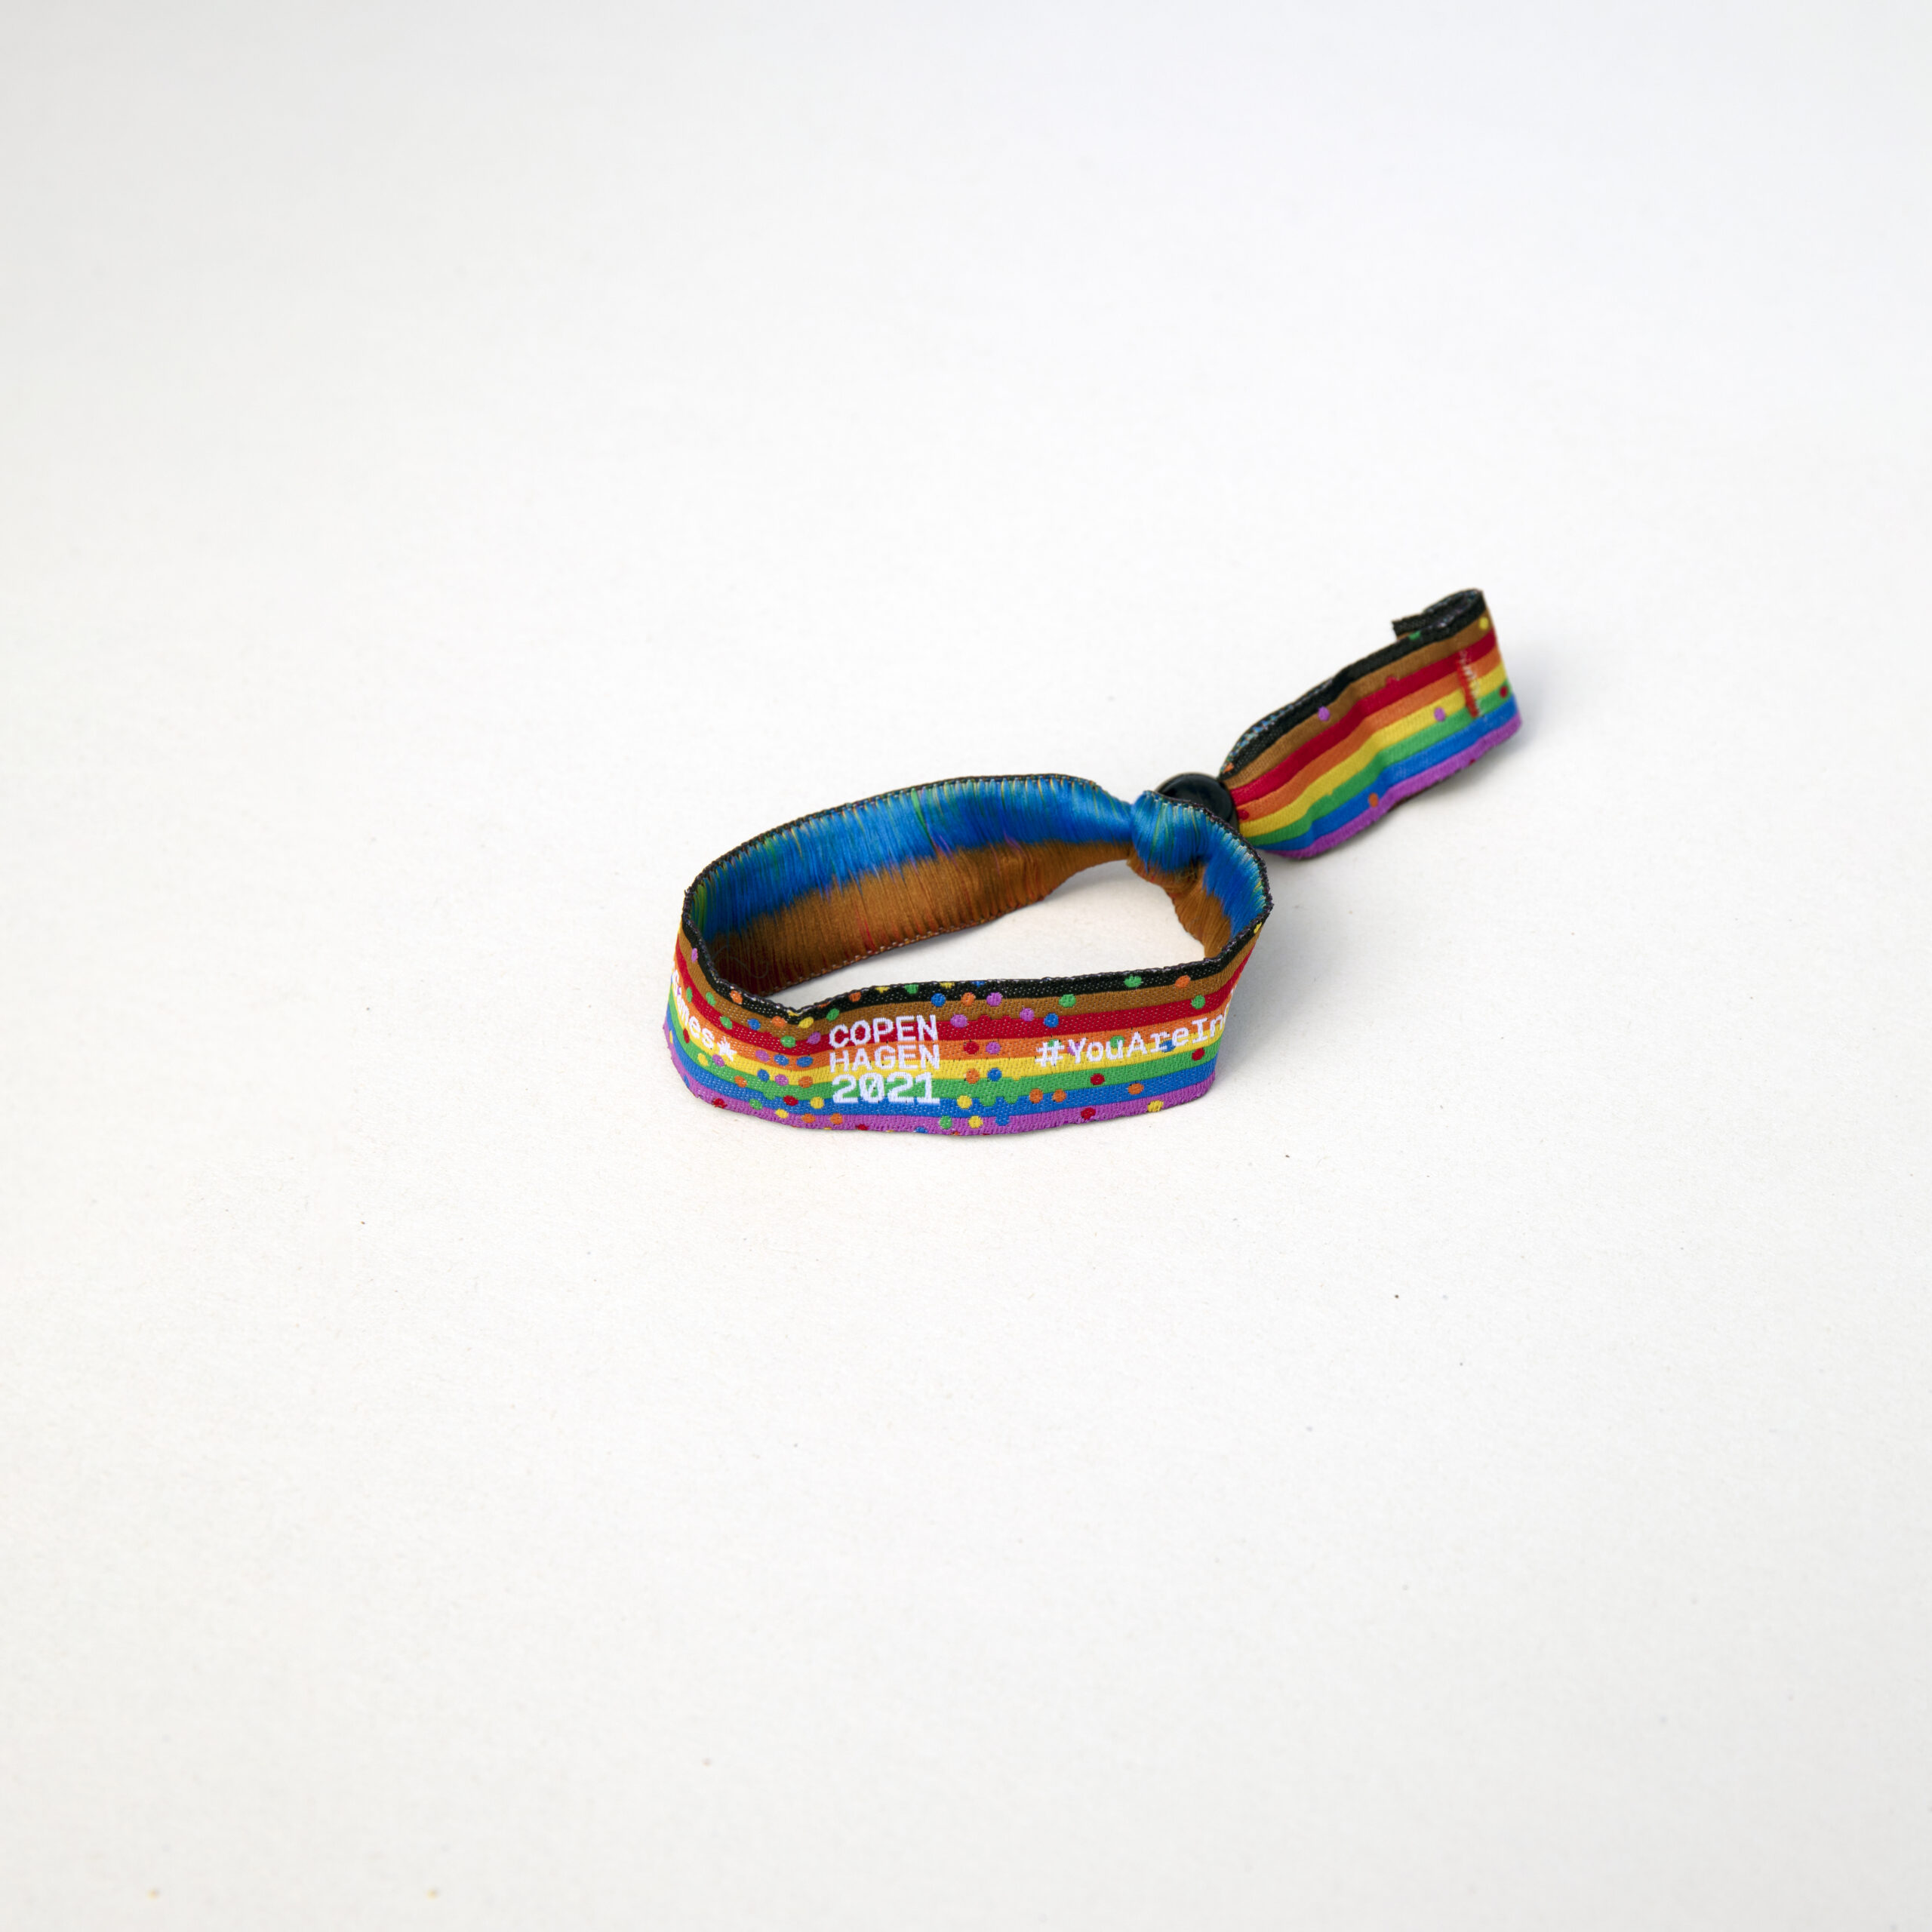 Our support Wristband